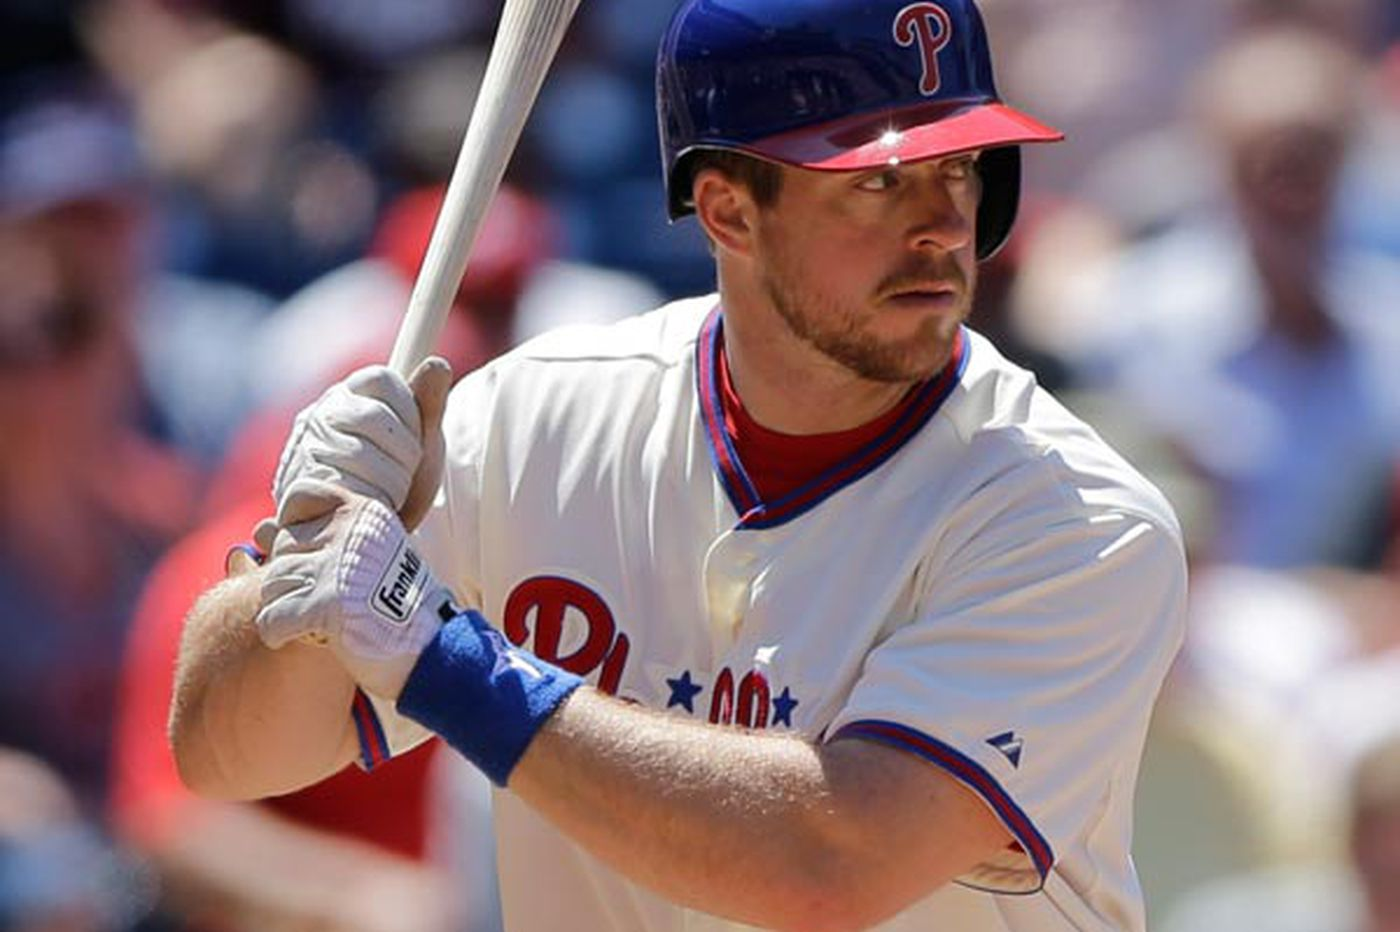 Phillies' Kratz a good example of 'Never give up!'